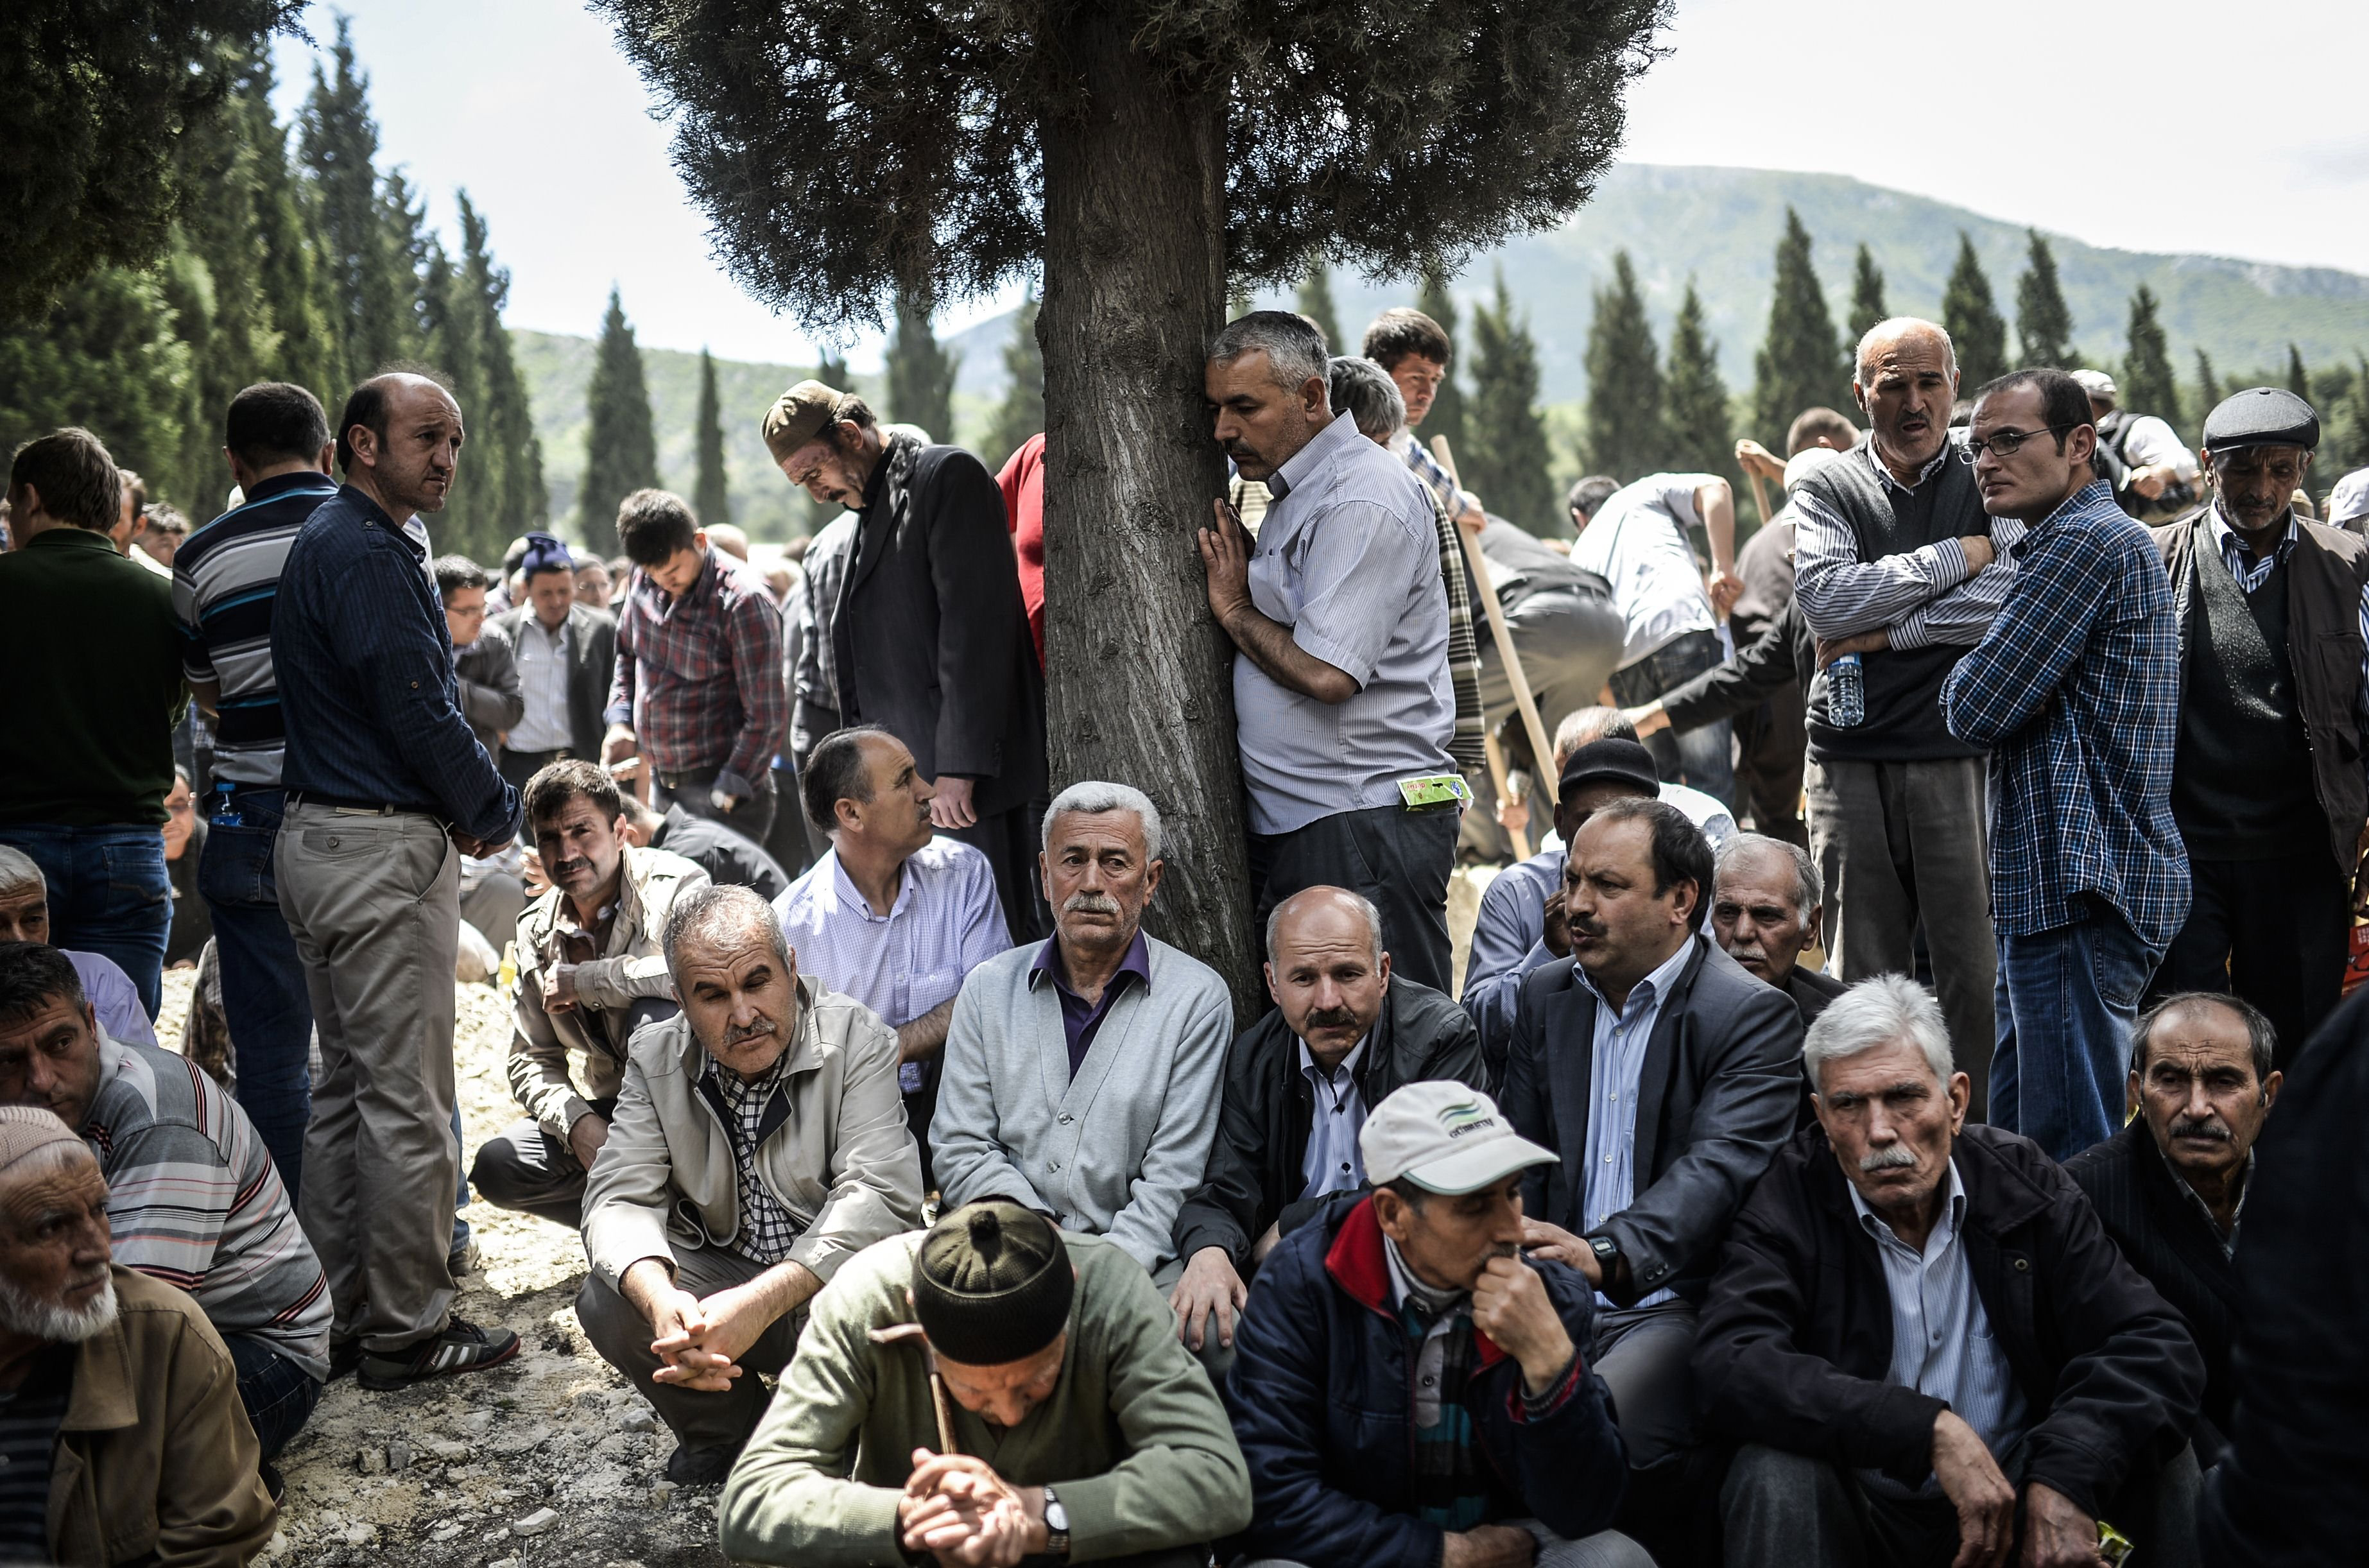 People mourn in a cemetery during the funeral ceremony of miners who died in an explosion on May 15, 2014, in the western town of Soma in the Manisa province.